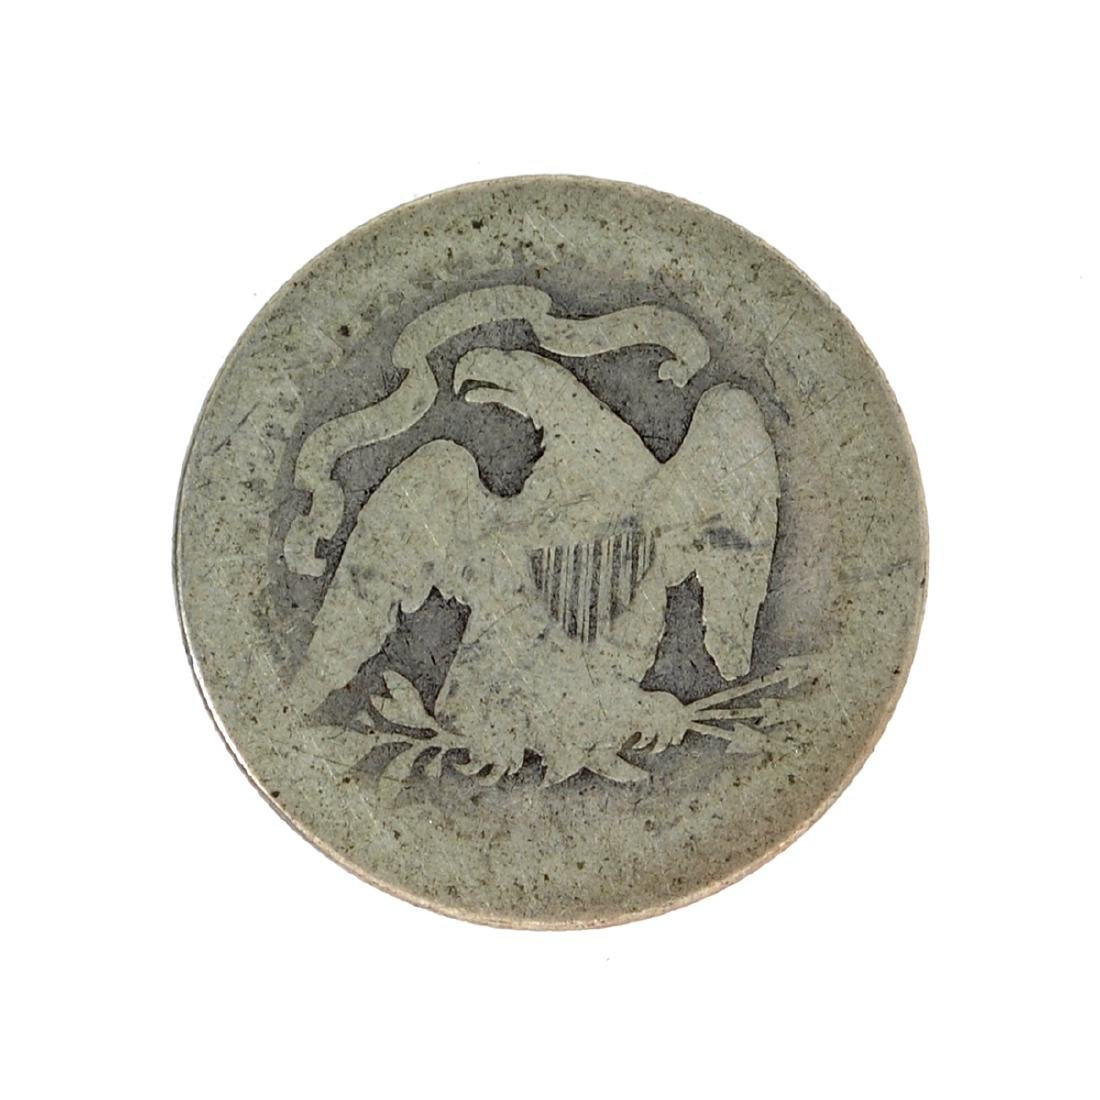 1891 Liberty Seated Quarter Dollar Coin - 2